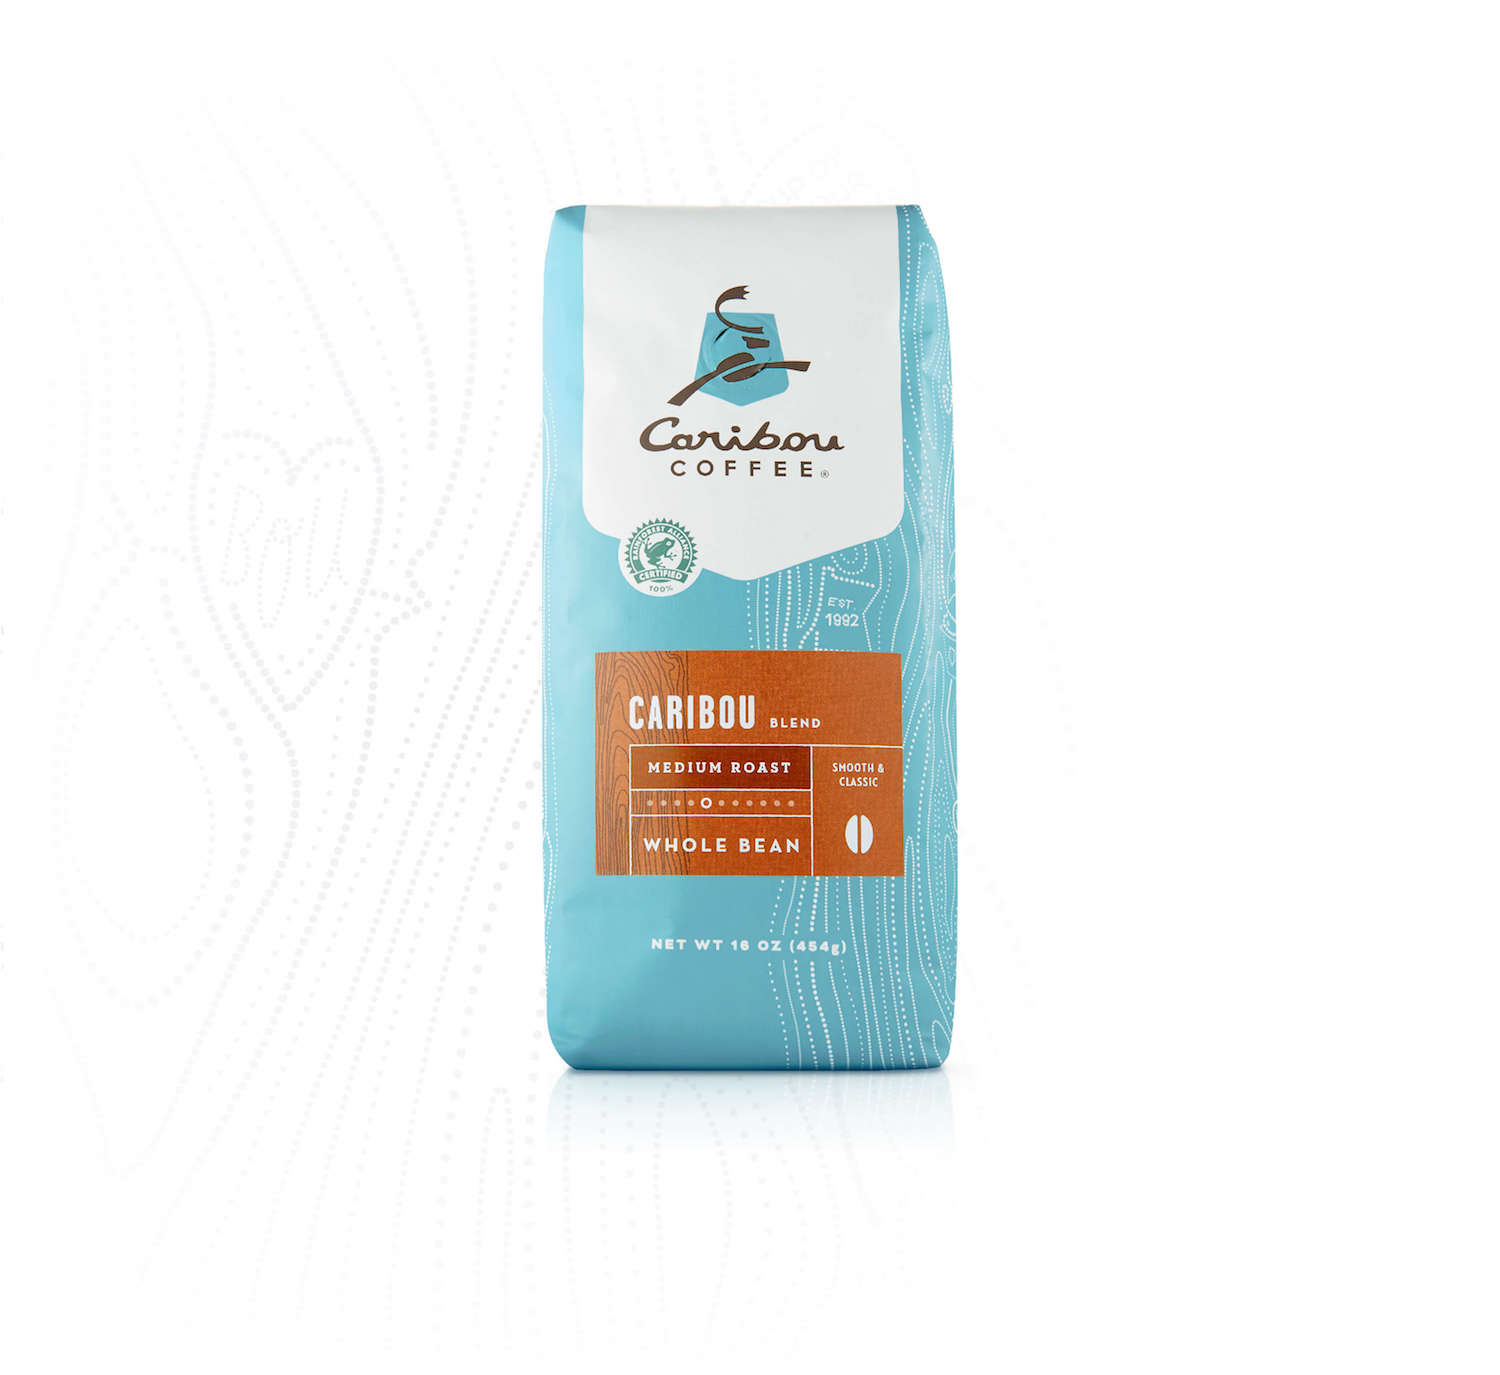 Caribou Coffee image